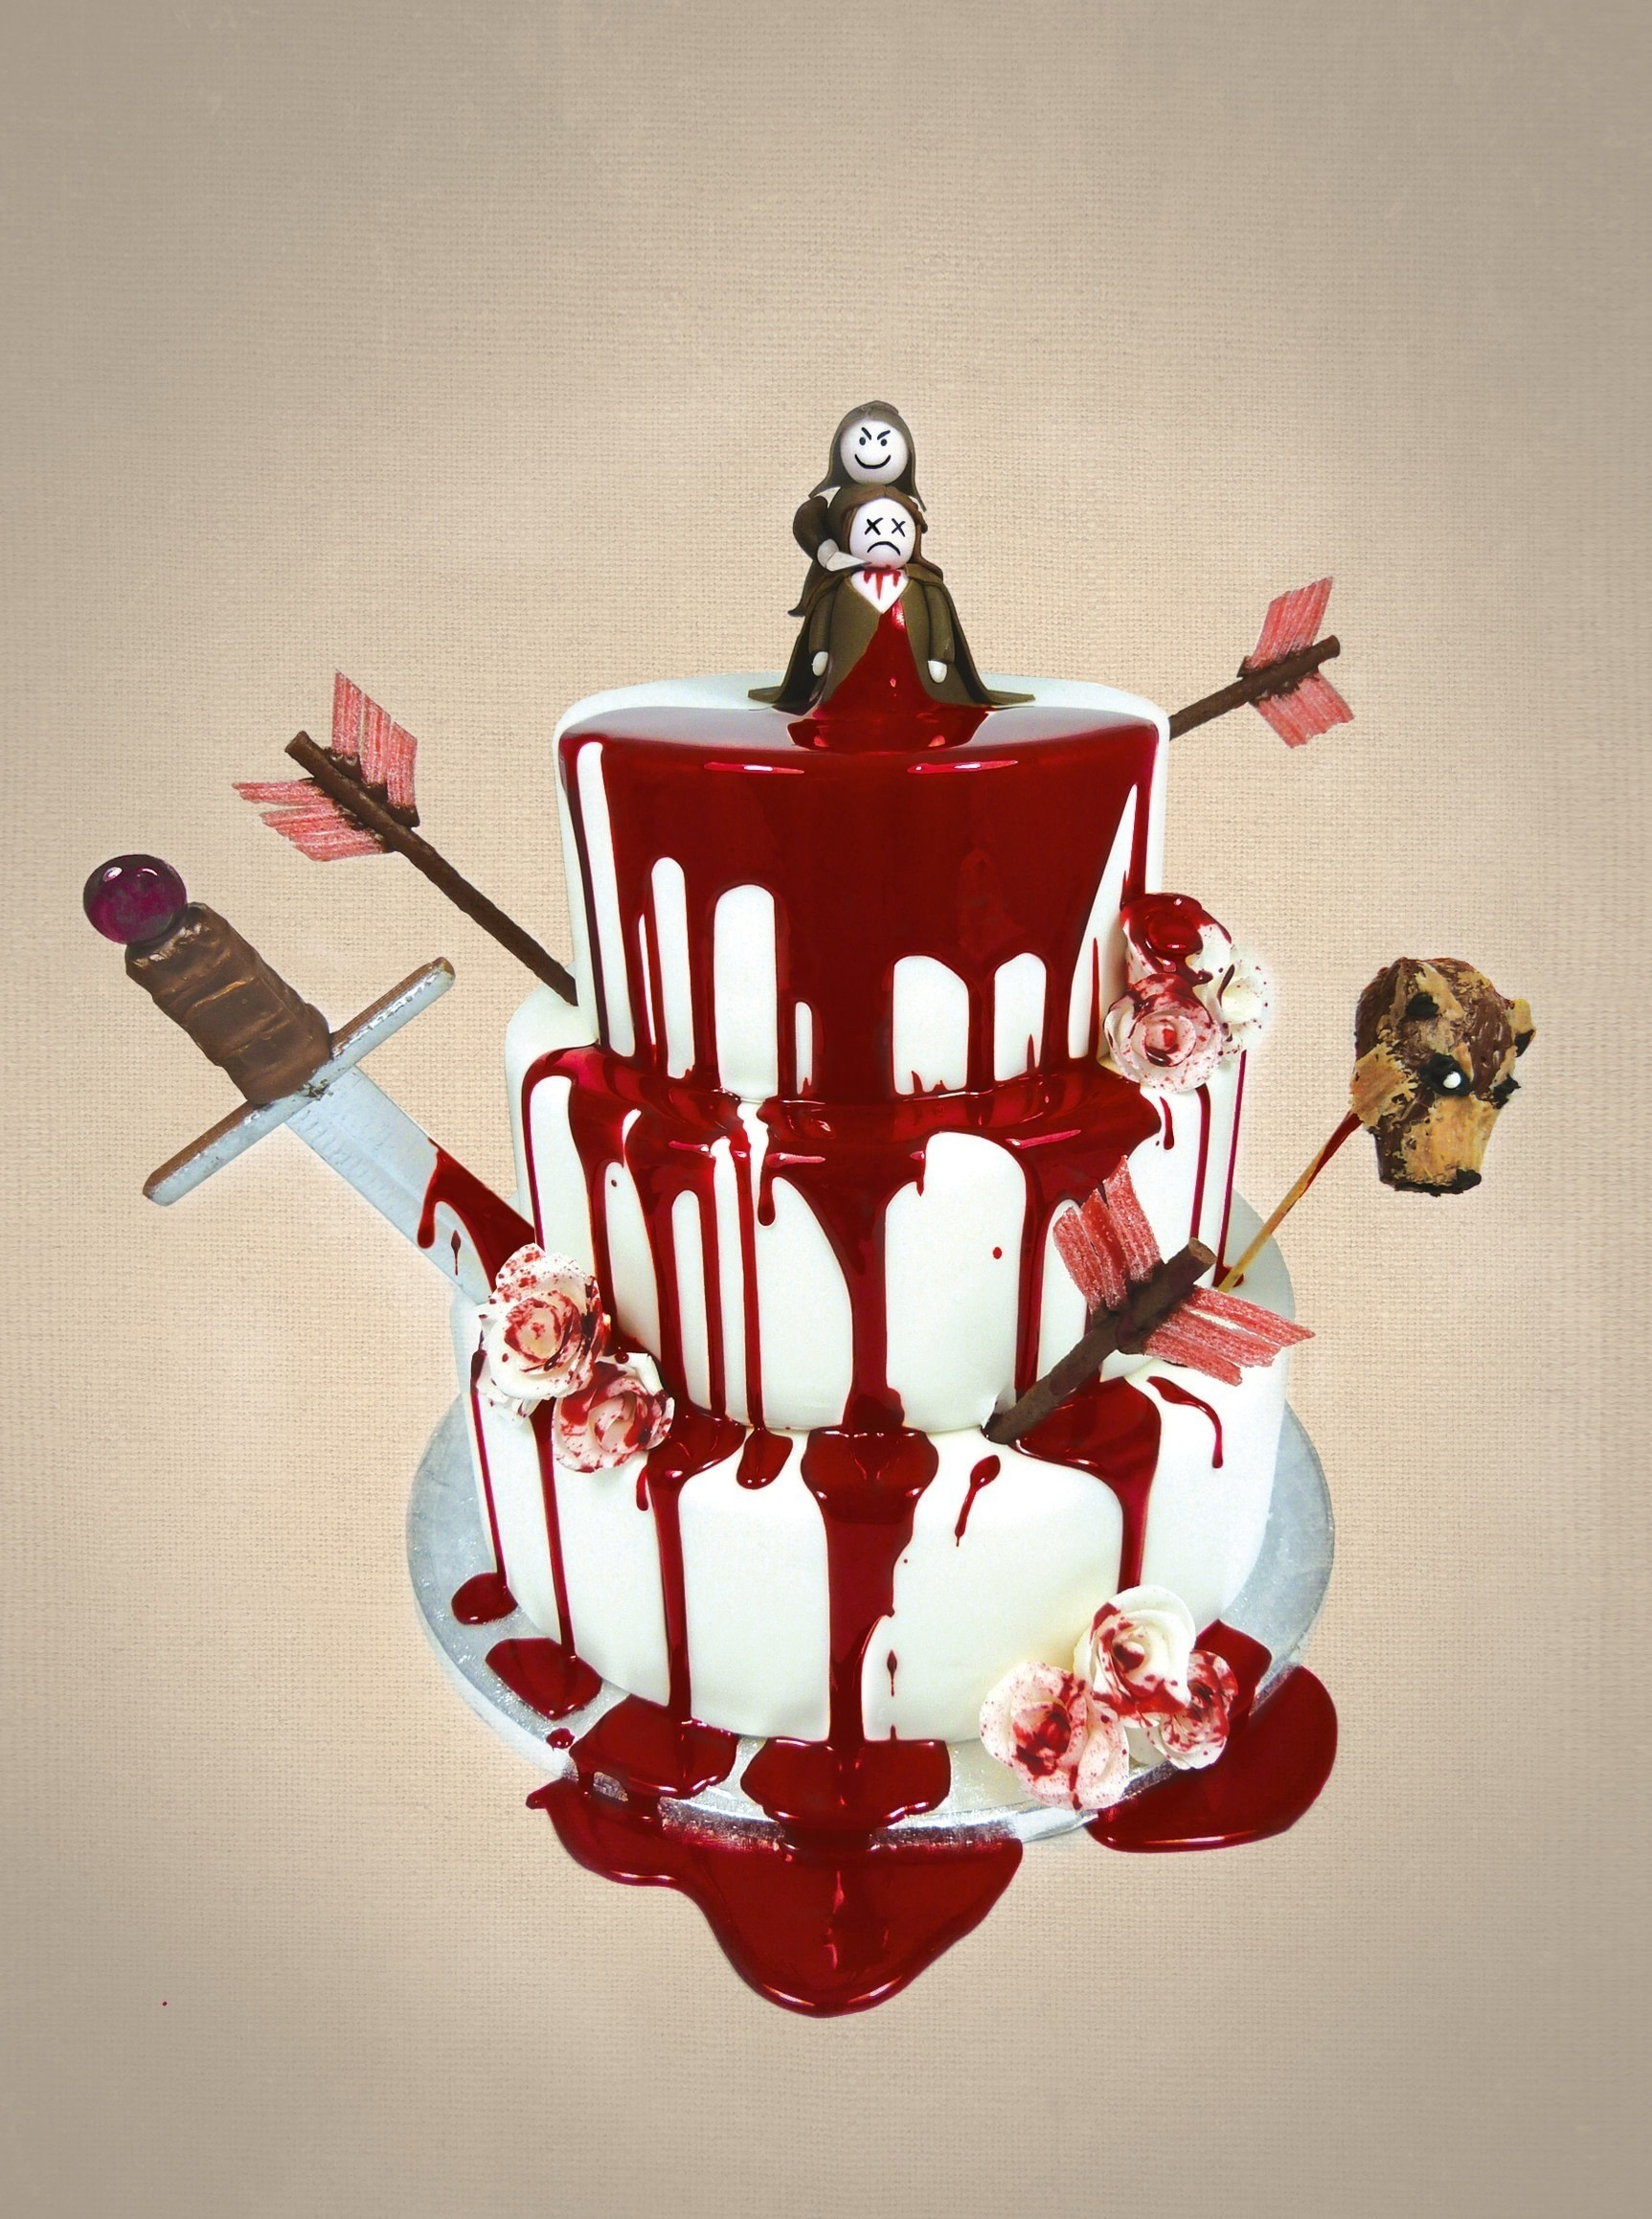 Red Velvet Wedding Cake 183 Extract From Game Of Scones By